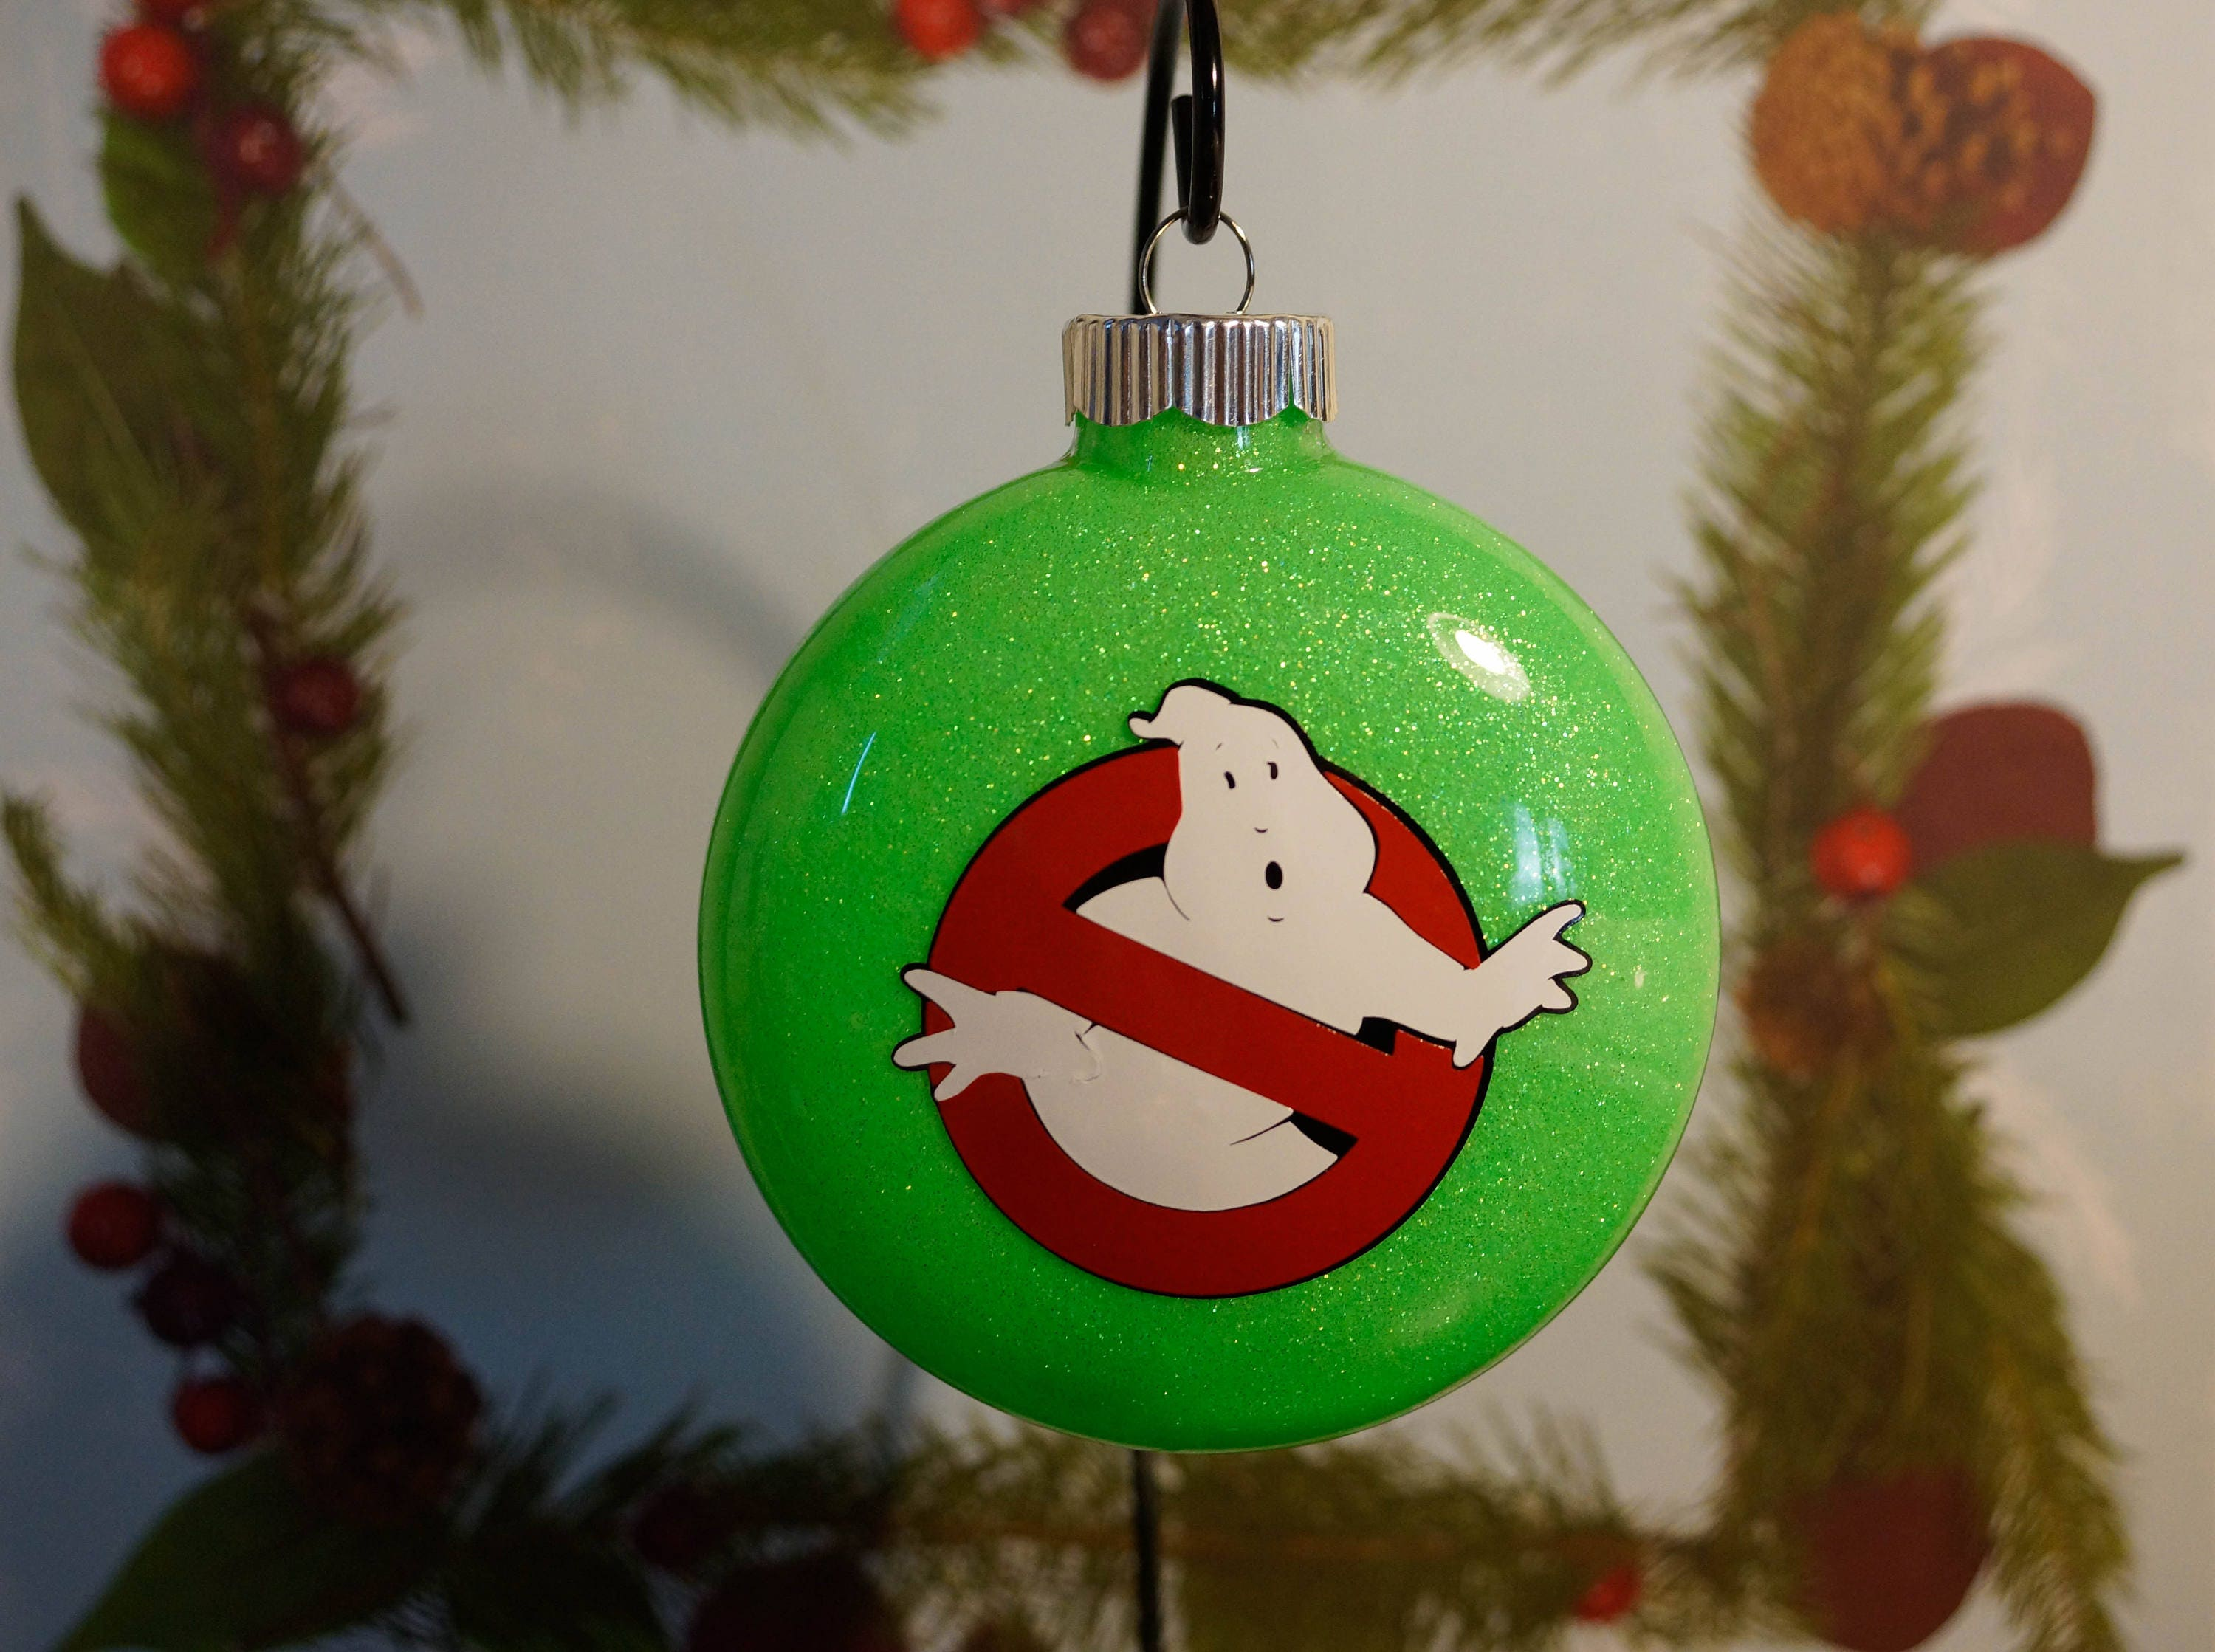 Ghostbusters Inspired Christmas Ornament